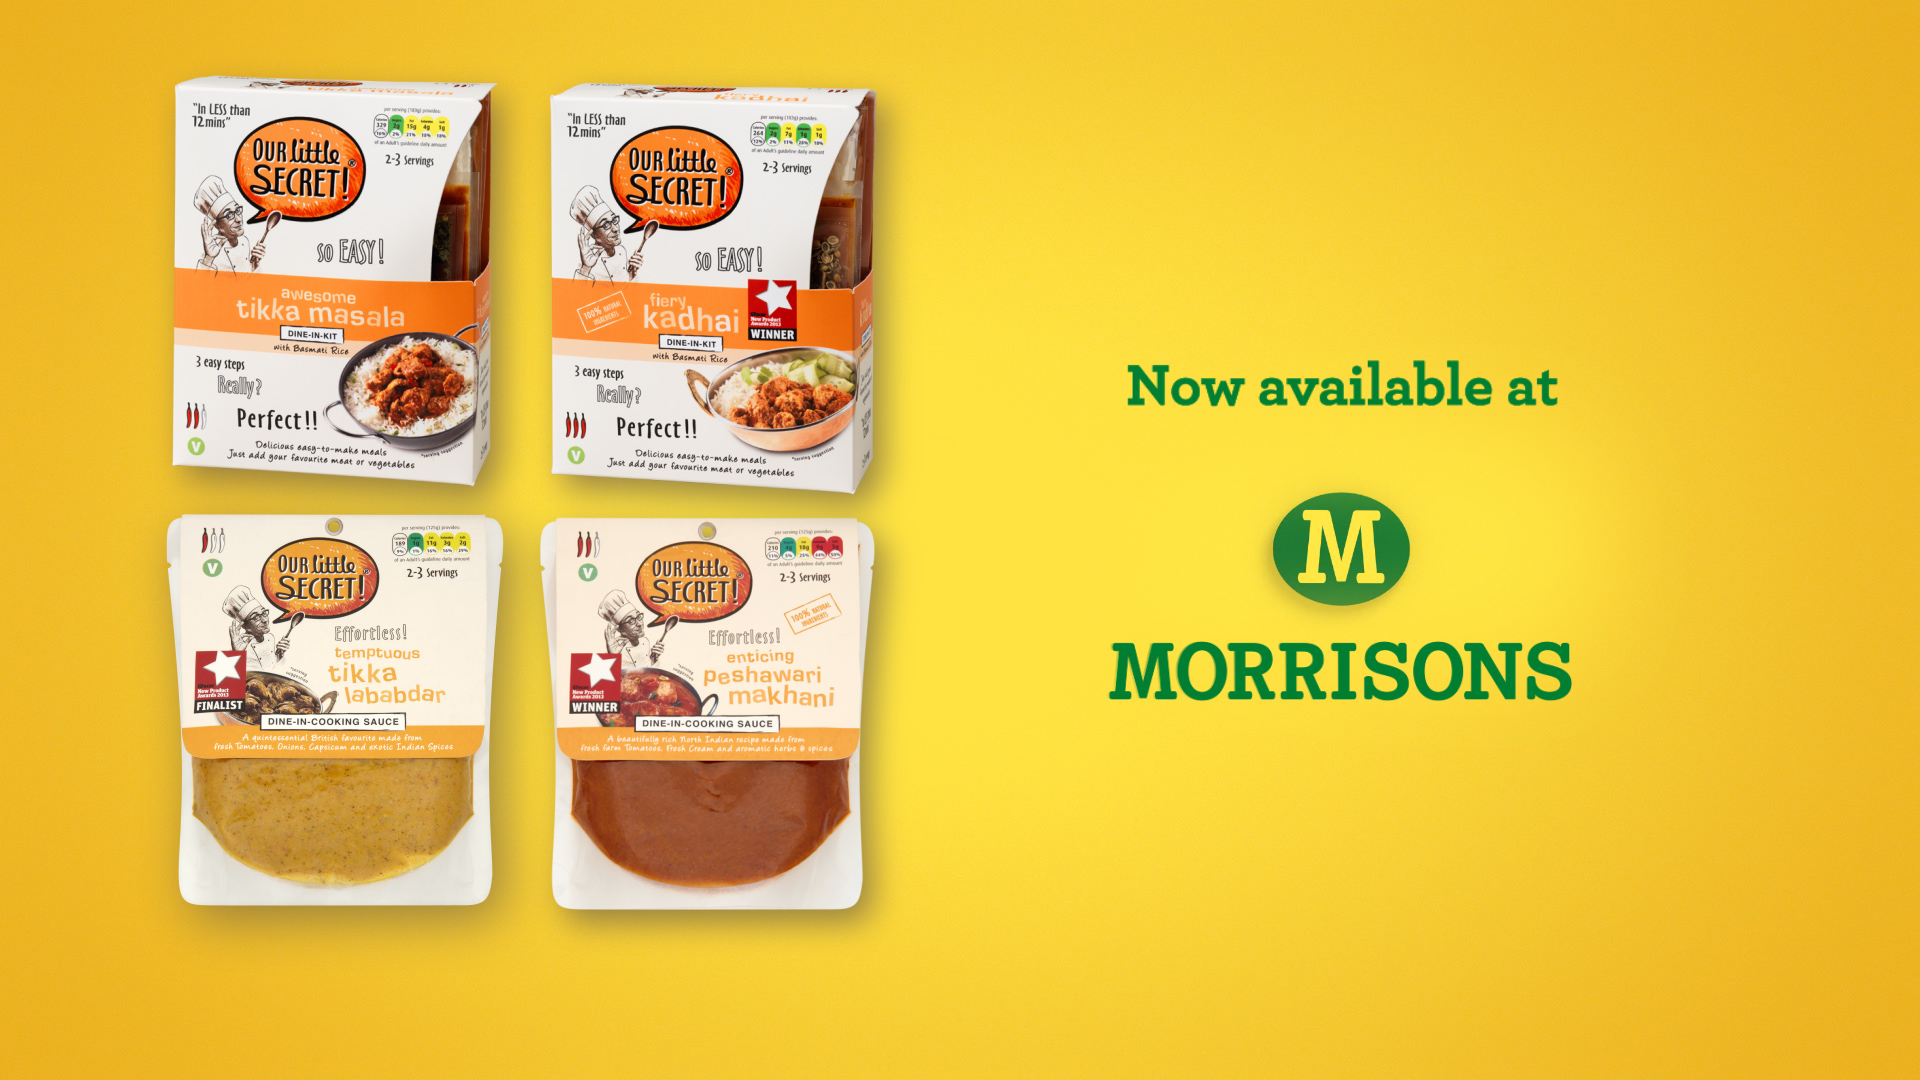 Our Little Secret : Available At Morrisons TVC